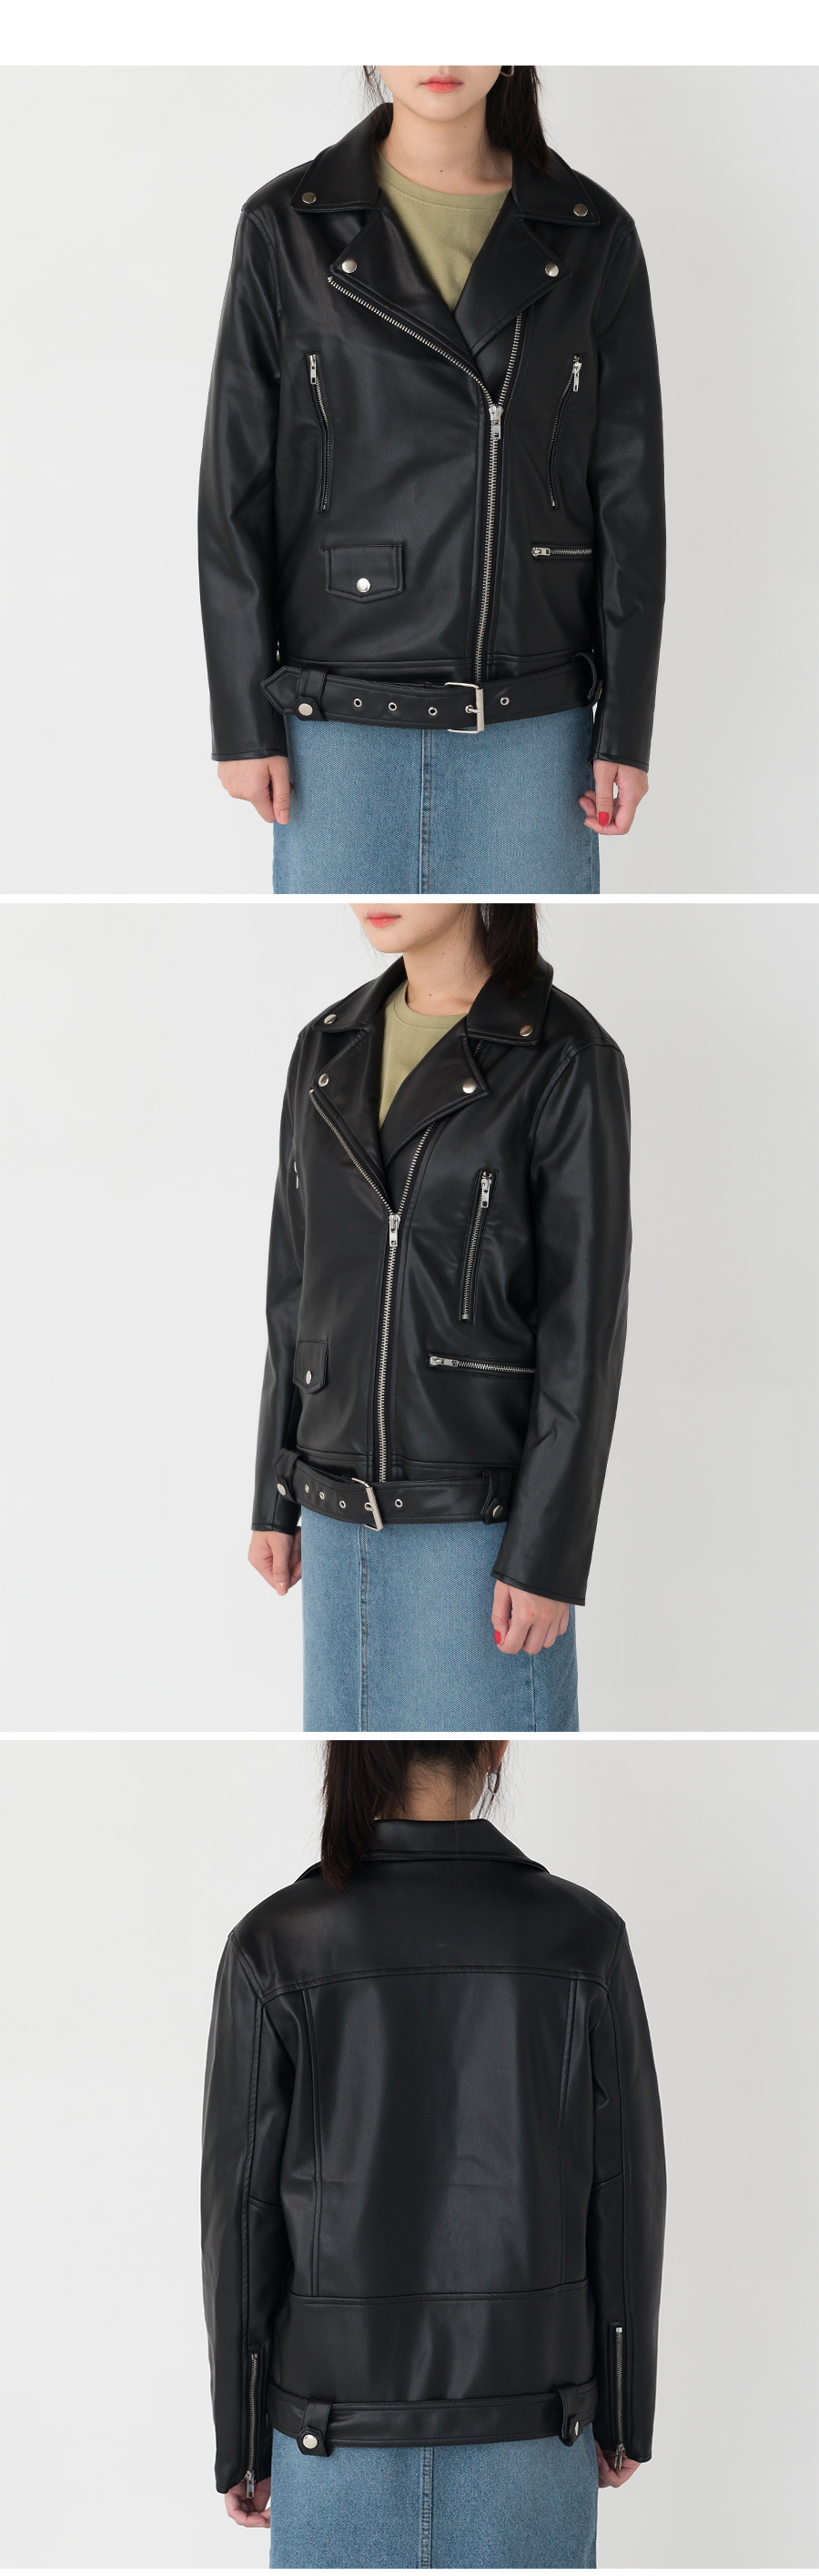 oversize leather rider jacket